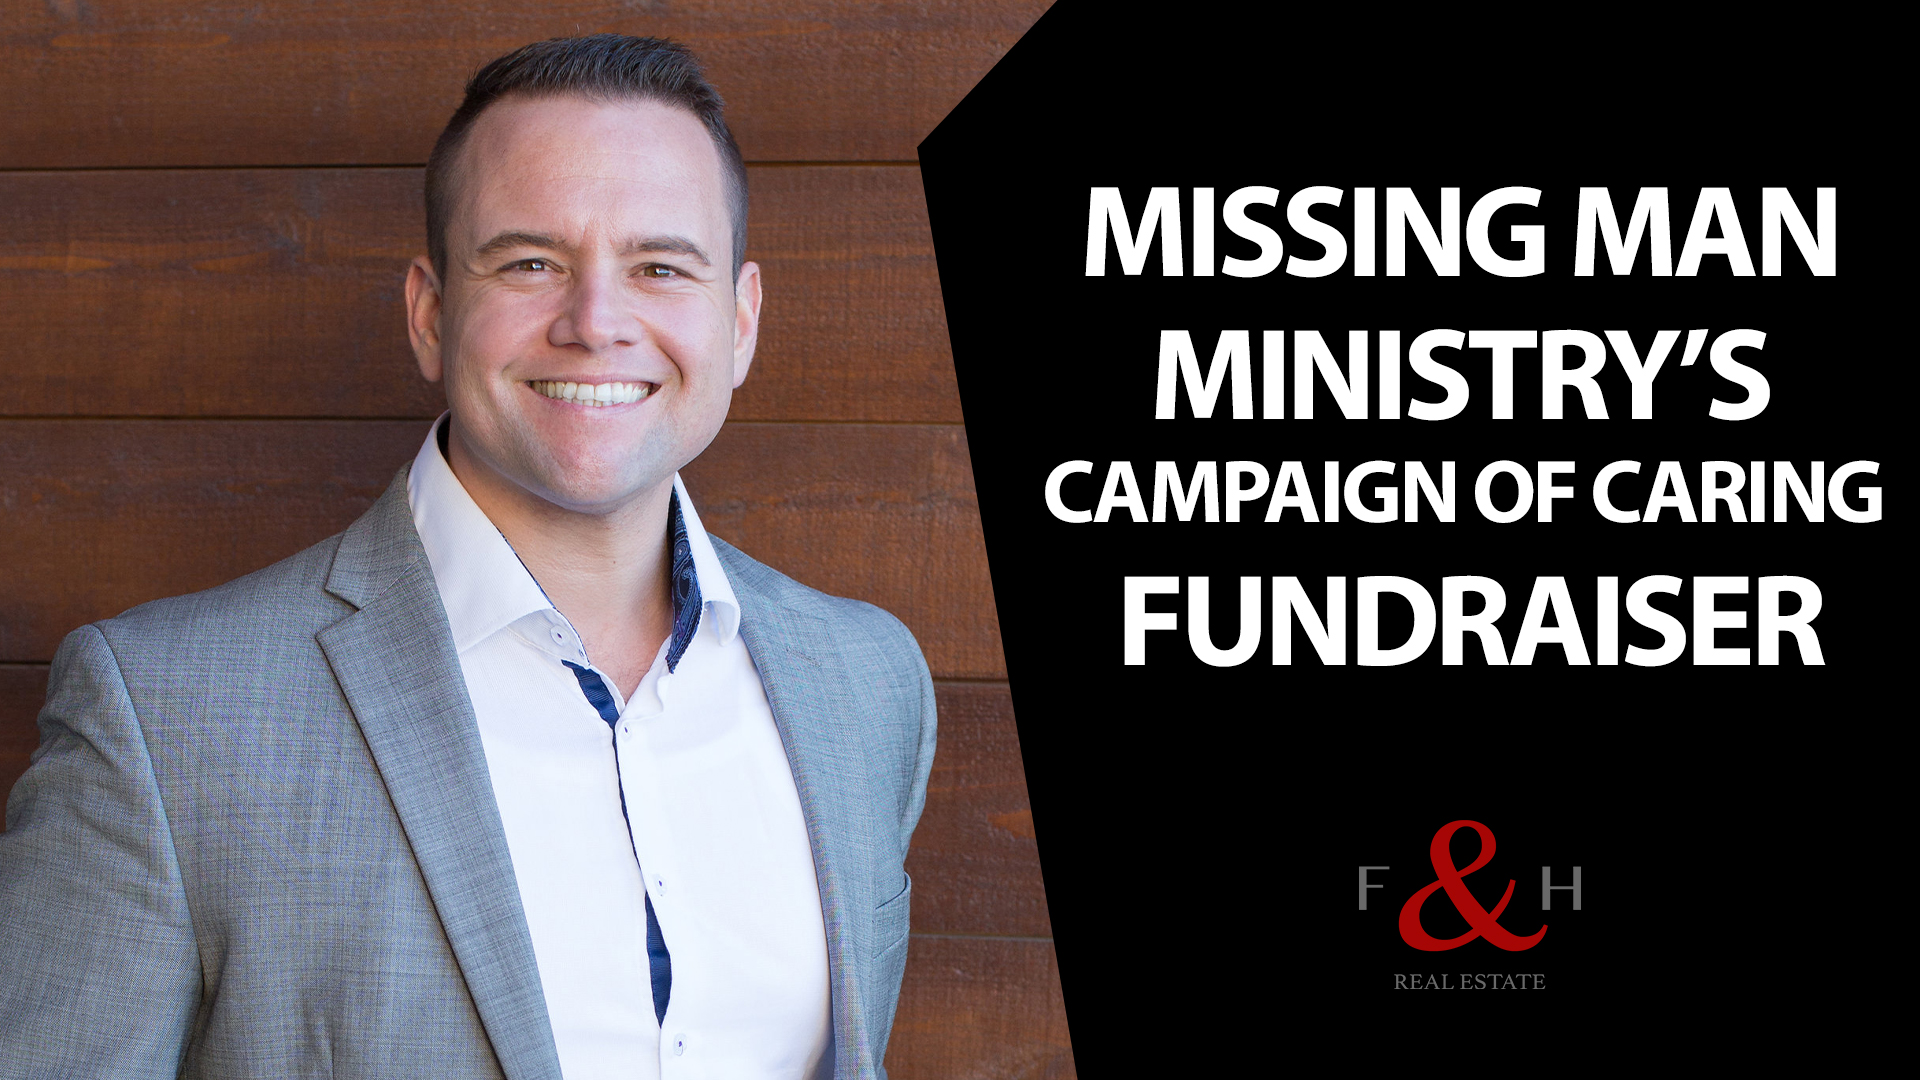 Will You Join Our Campaign of Caring Fundraiser?